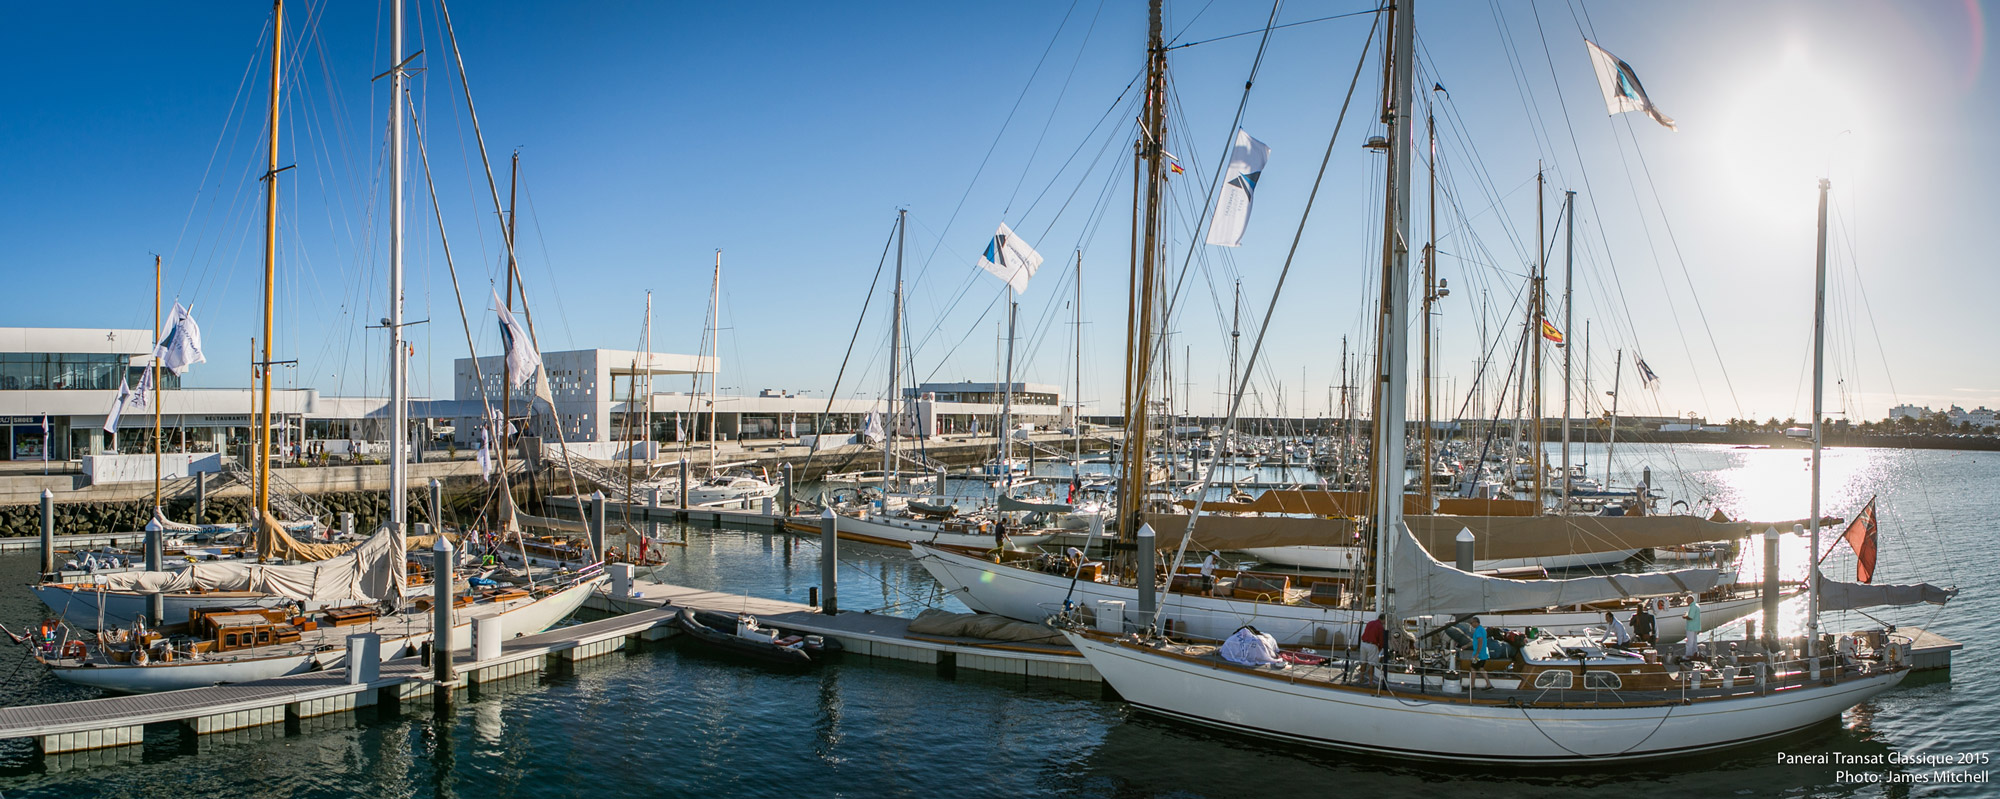 Large marina filled with white and wood sail boats in Lanzarote Island.